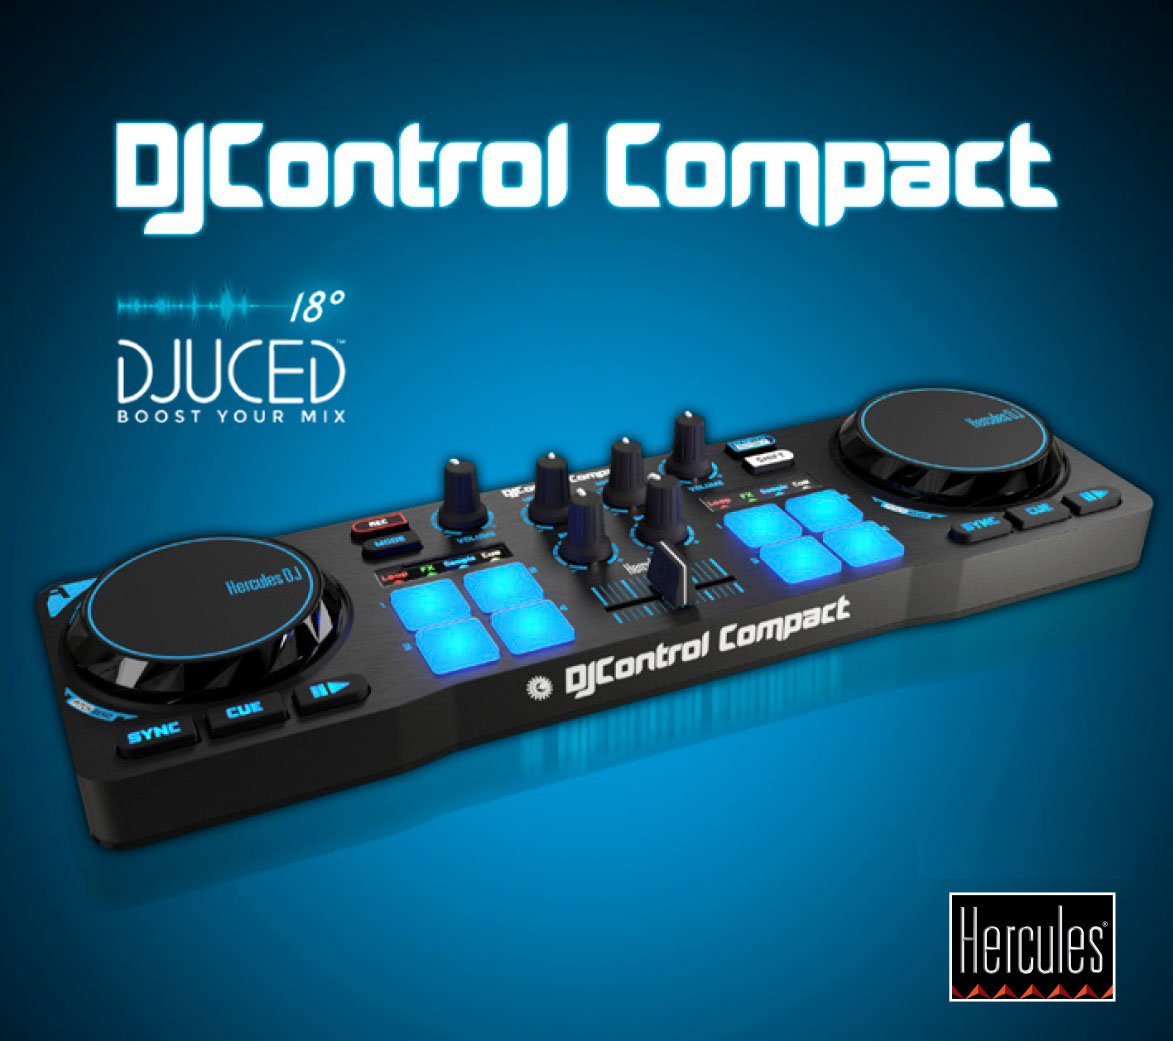 French Hercules/Hi Cola Control Compact DJ Controller Live Disc Player Delivery Software